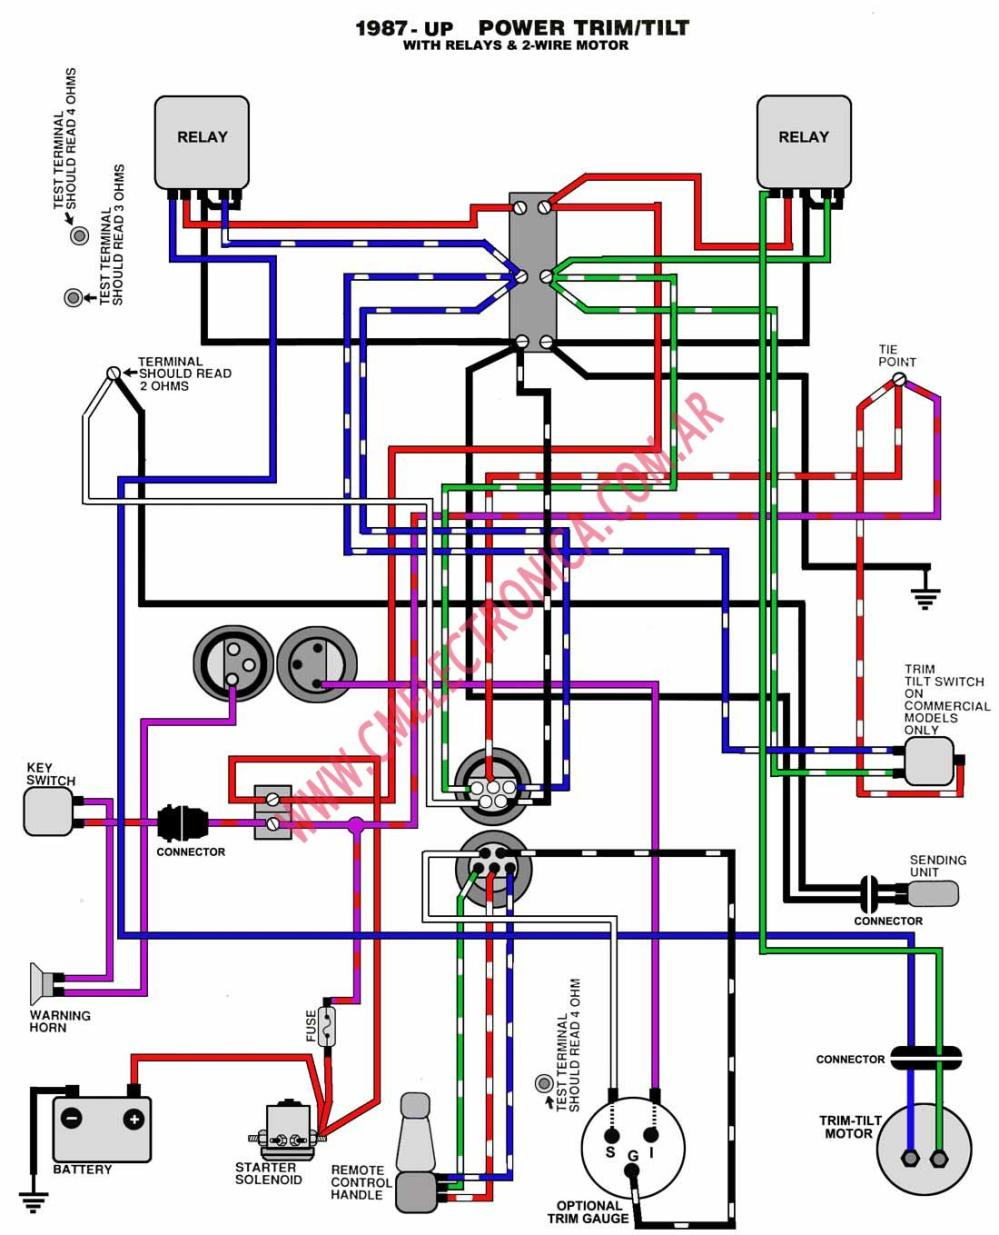 medium resolution of 1971 yamaha engine diagram 5 17 depo aqua de u2022yamaha l2gf wiring diagram online wiring